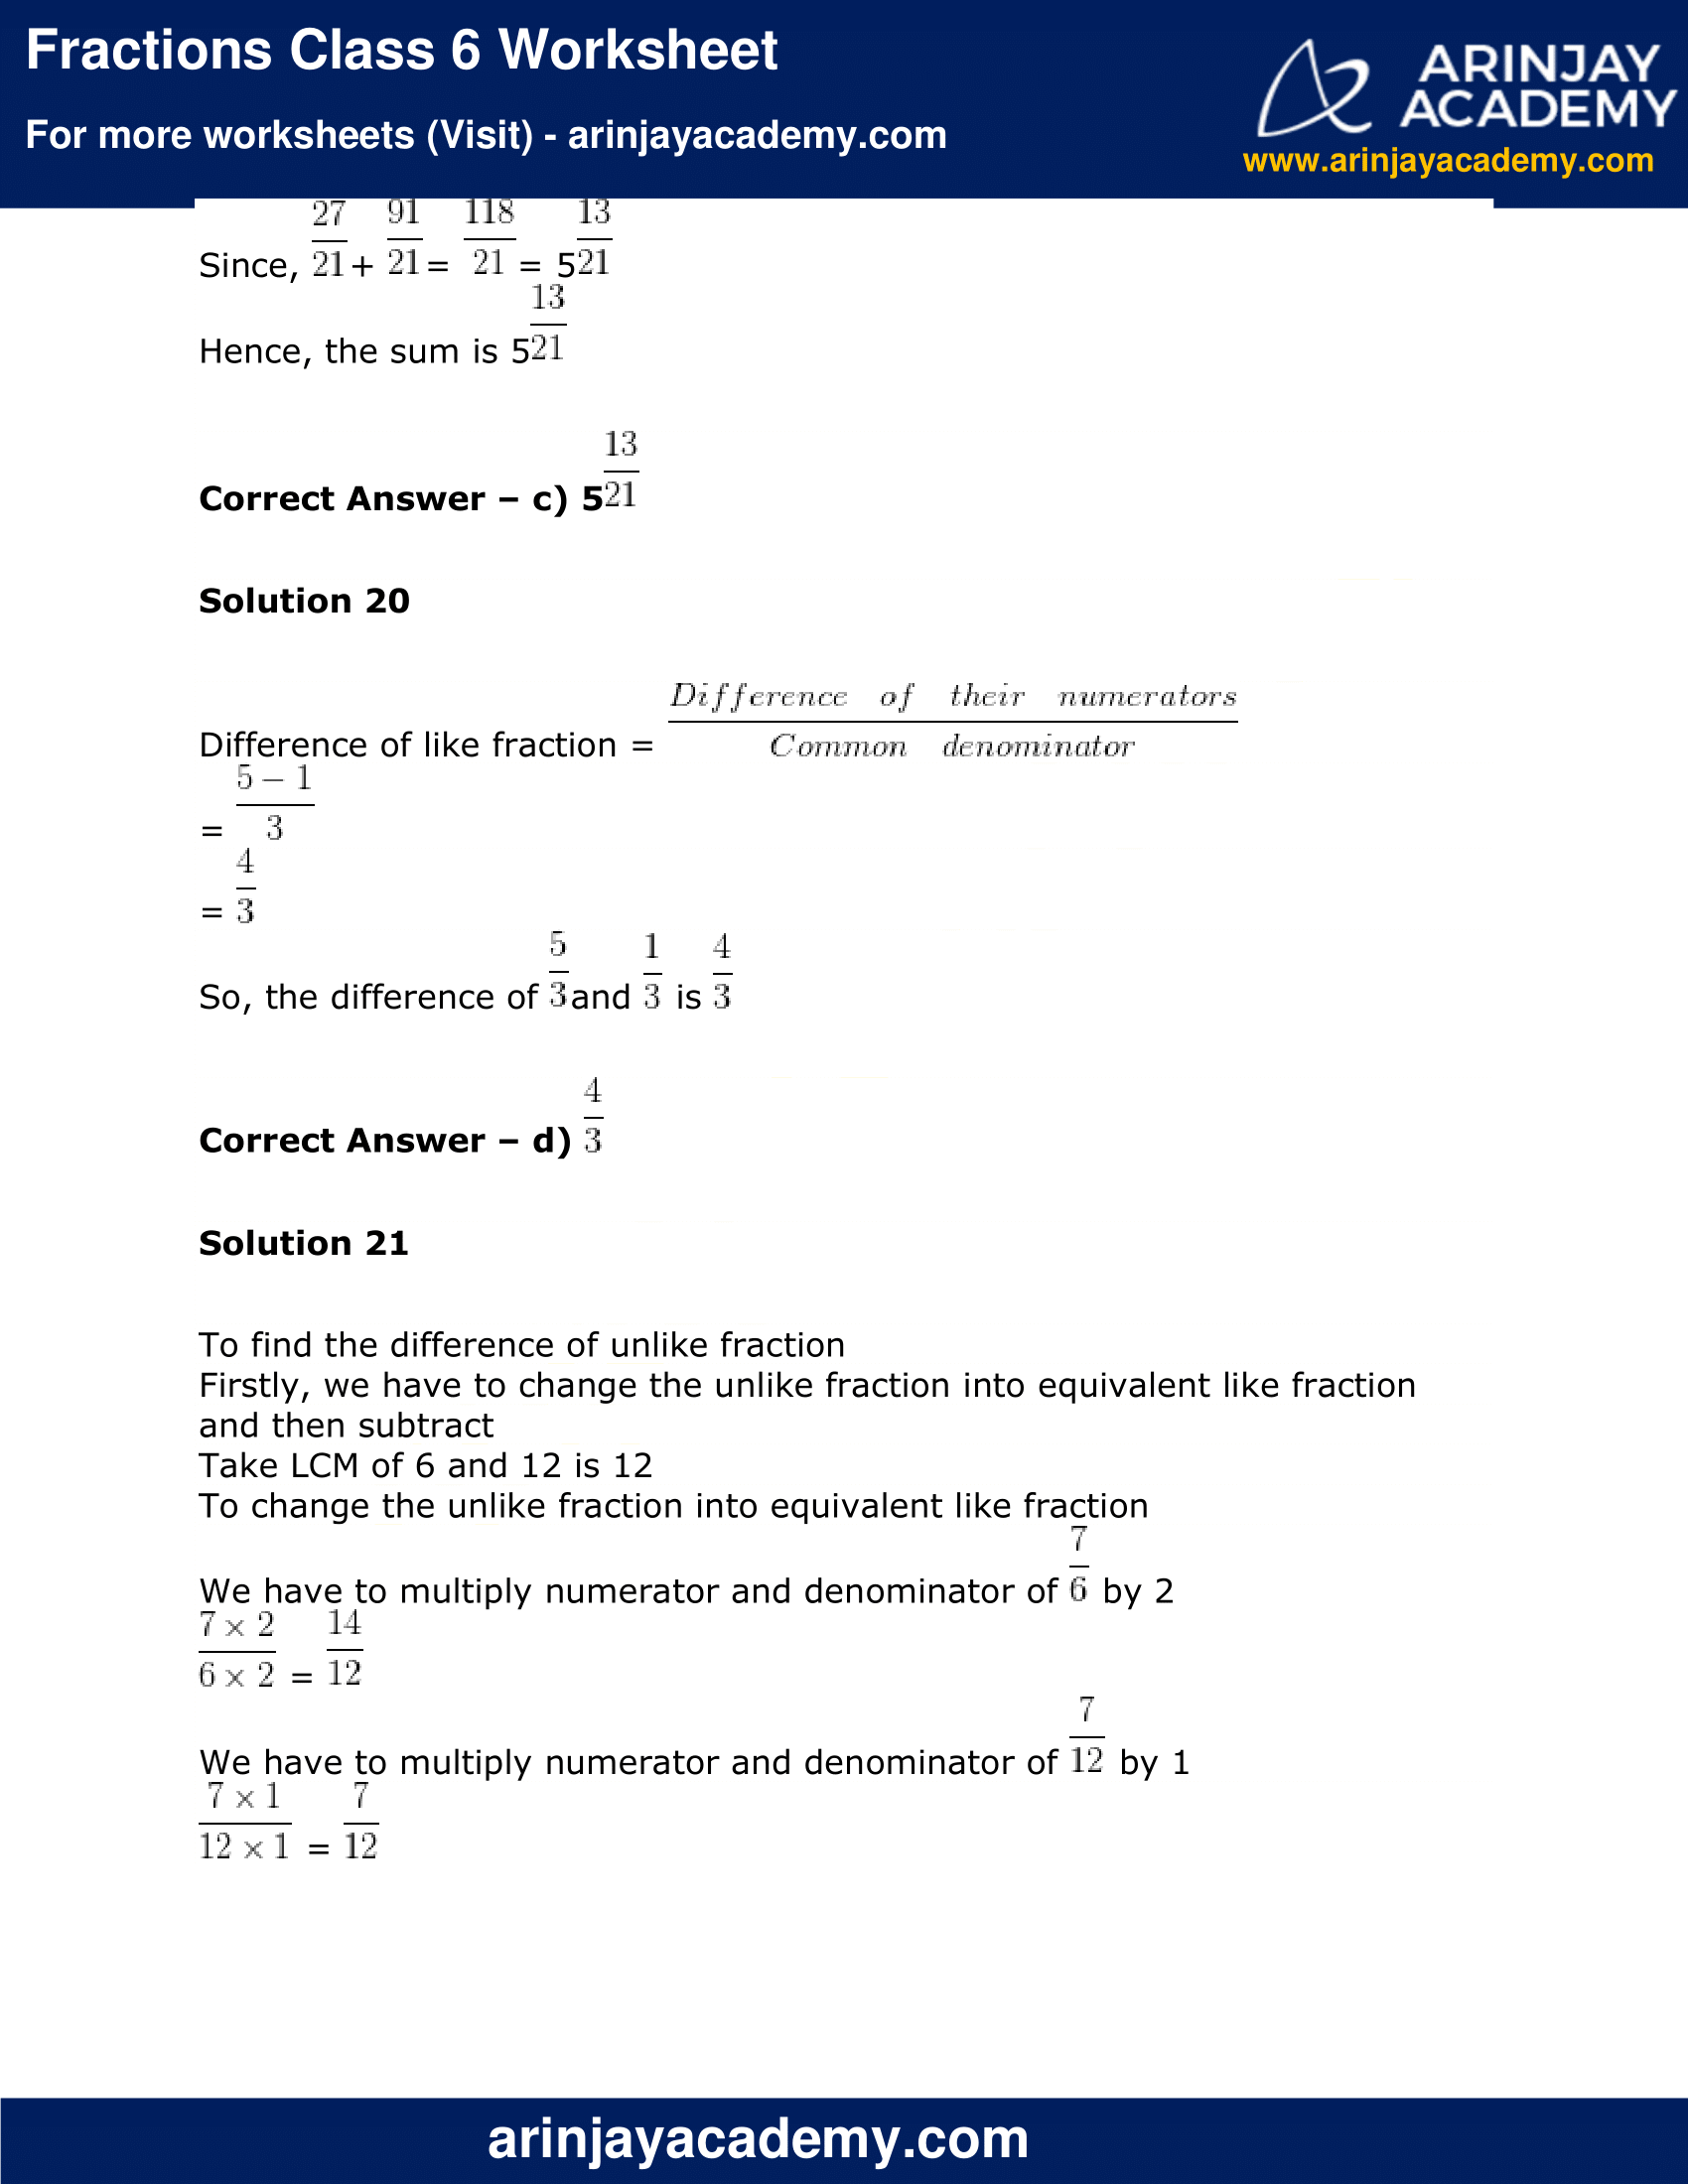 Fractions Class 6 Worksheet image 14